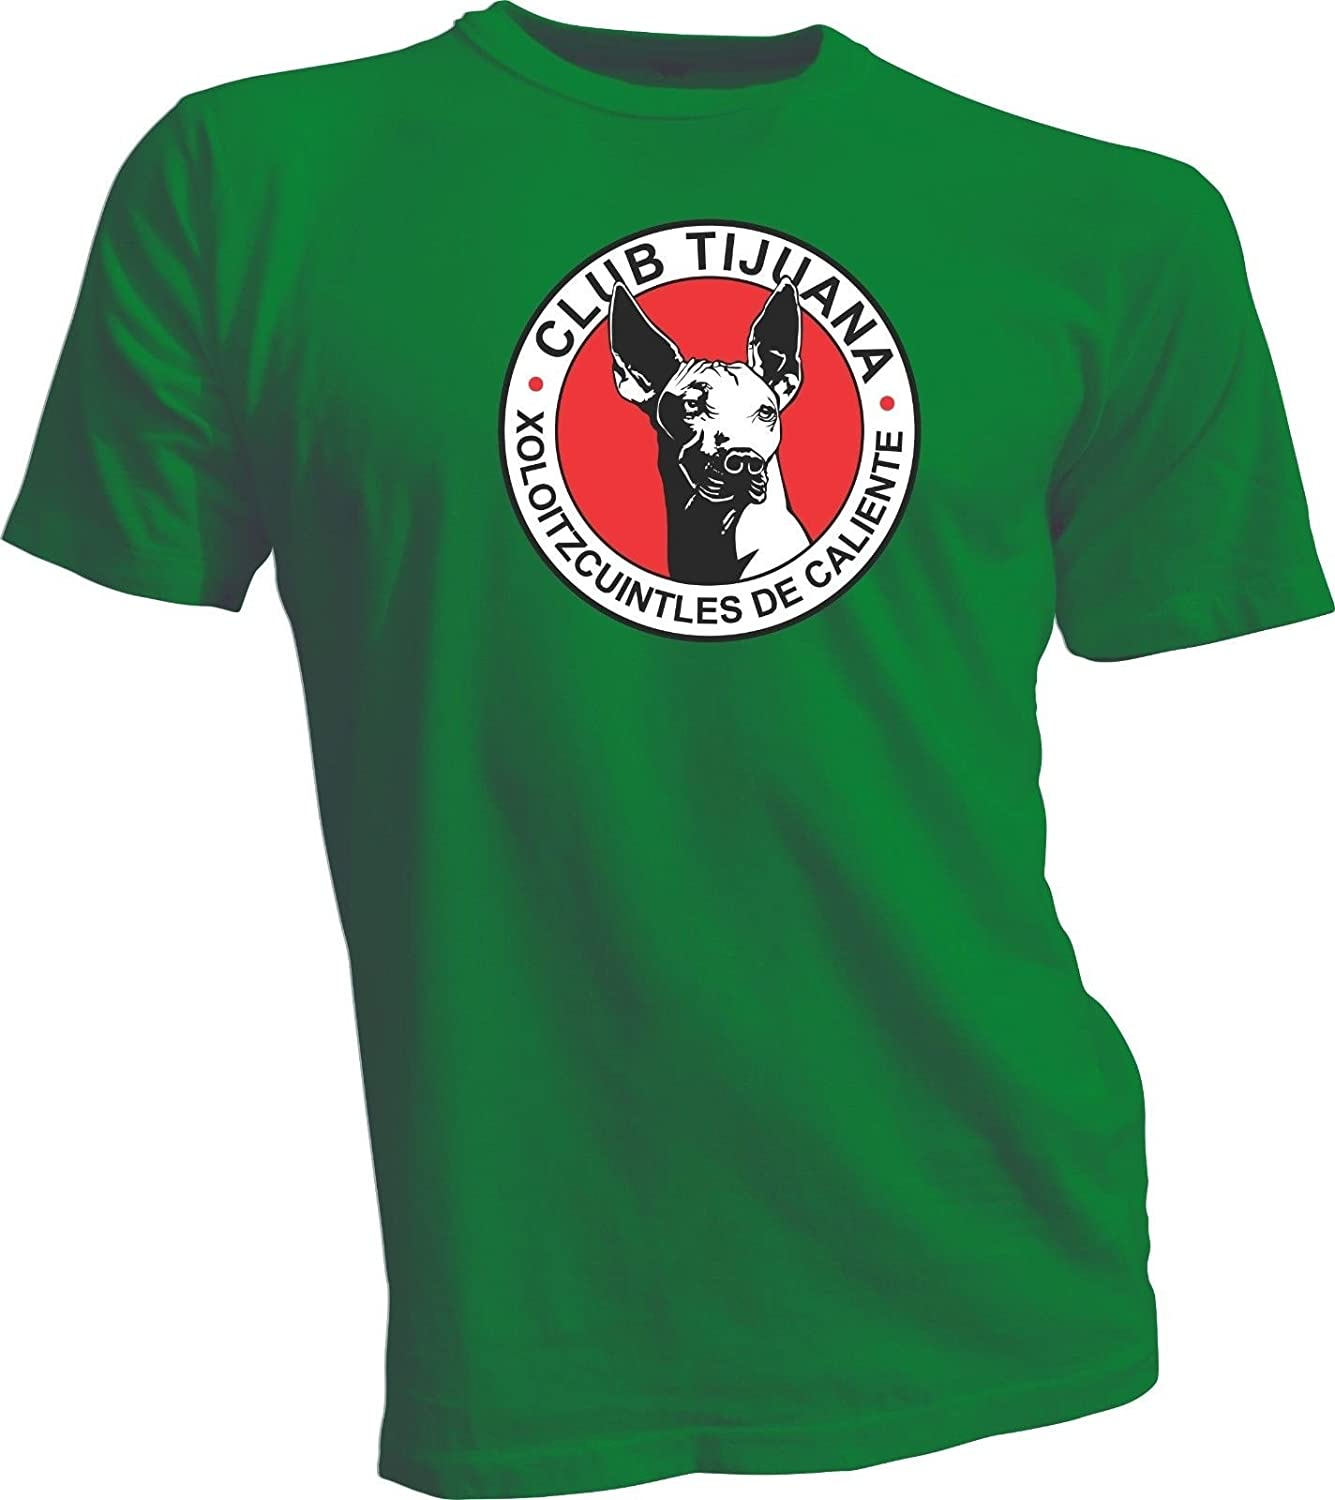 Amazon.com: XOLOS TIJUANA MEXICO Futbol Soccer Xoloitzcuintles Green T-SHIRT Camiseta NEW: Sports & Outdoors